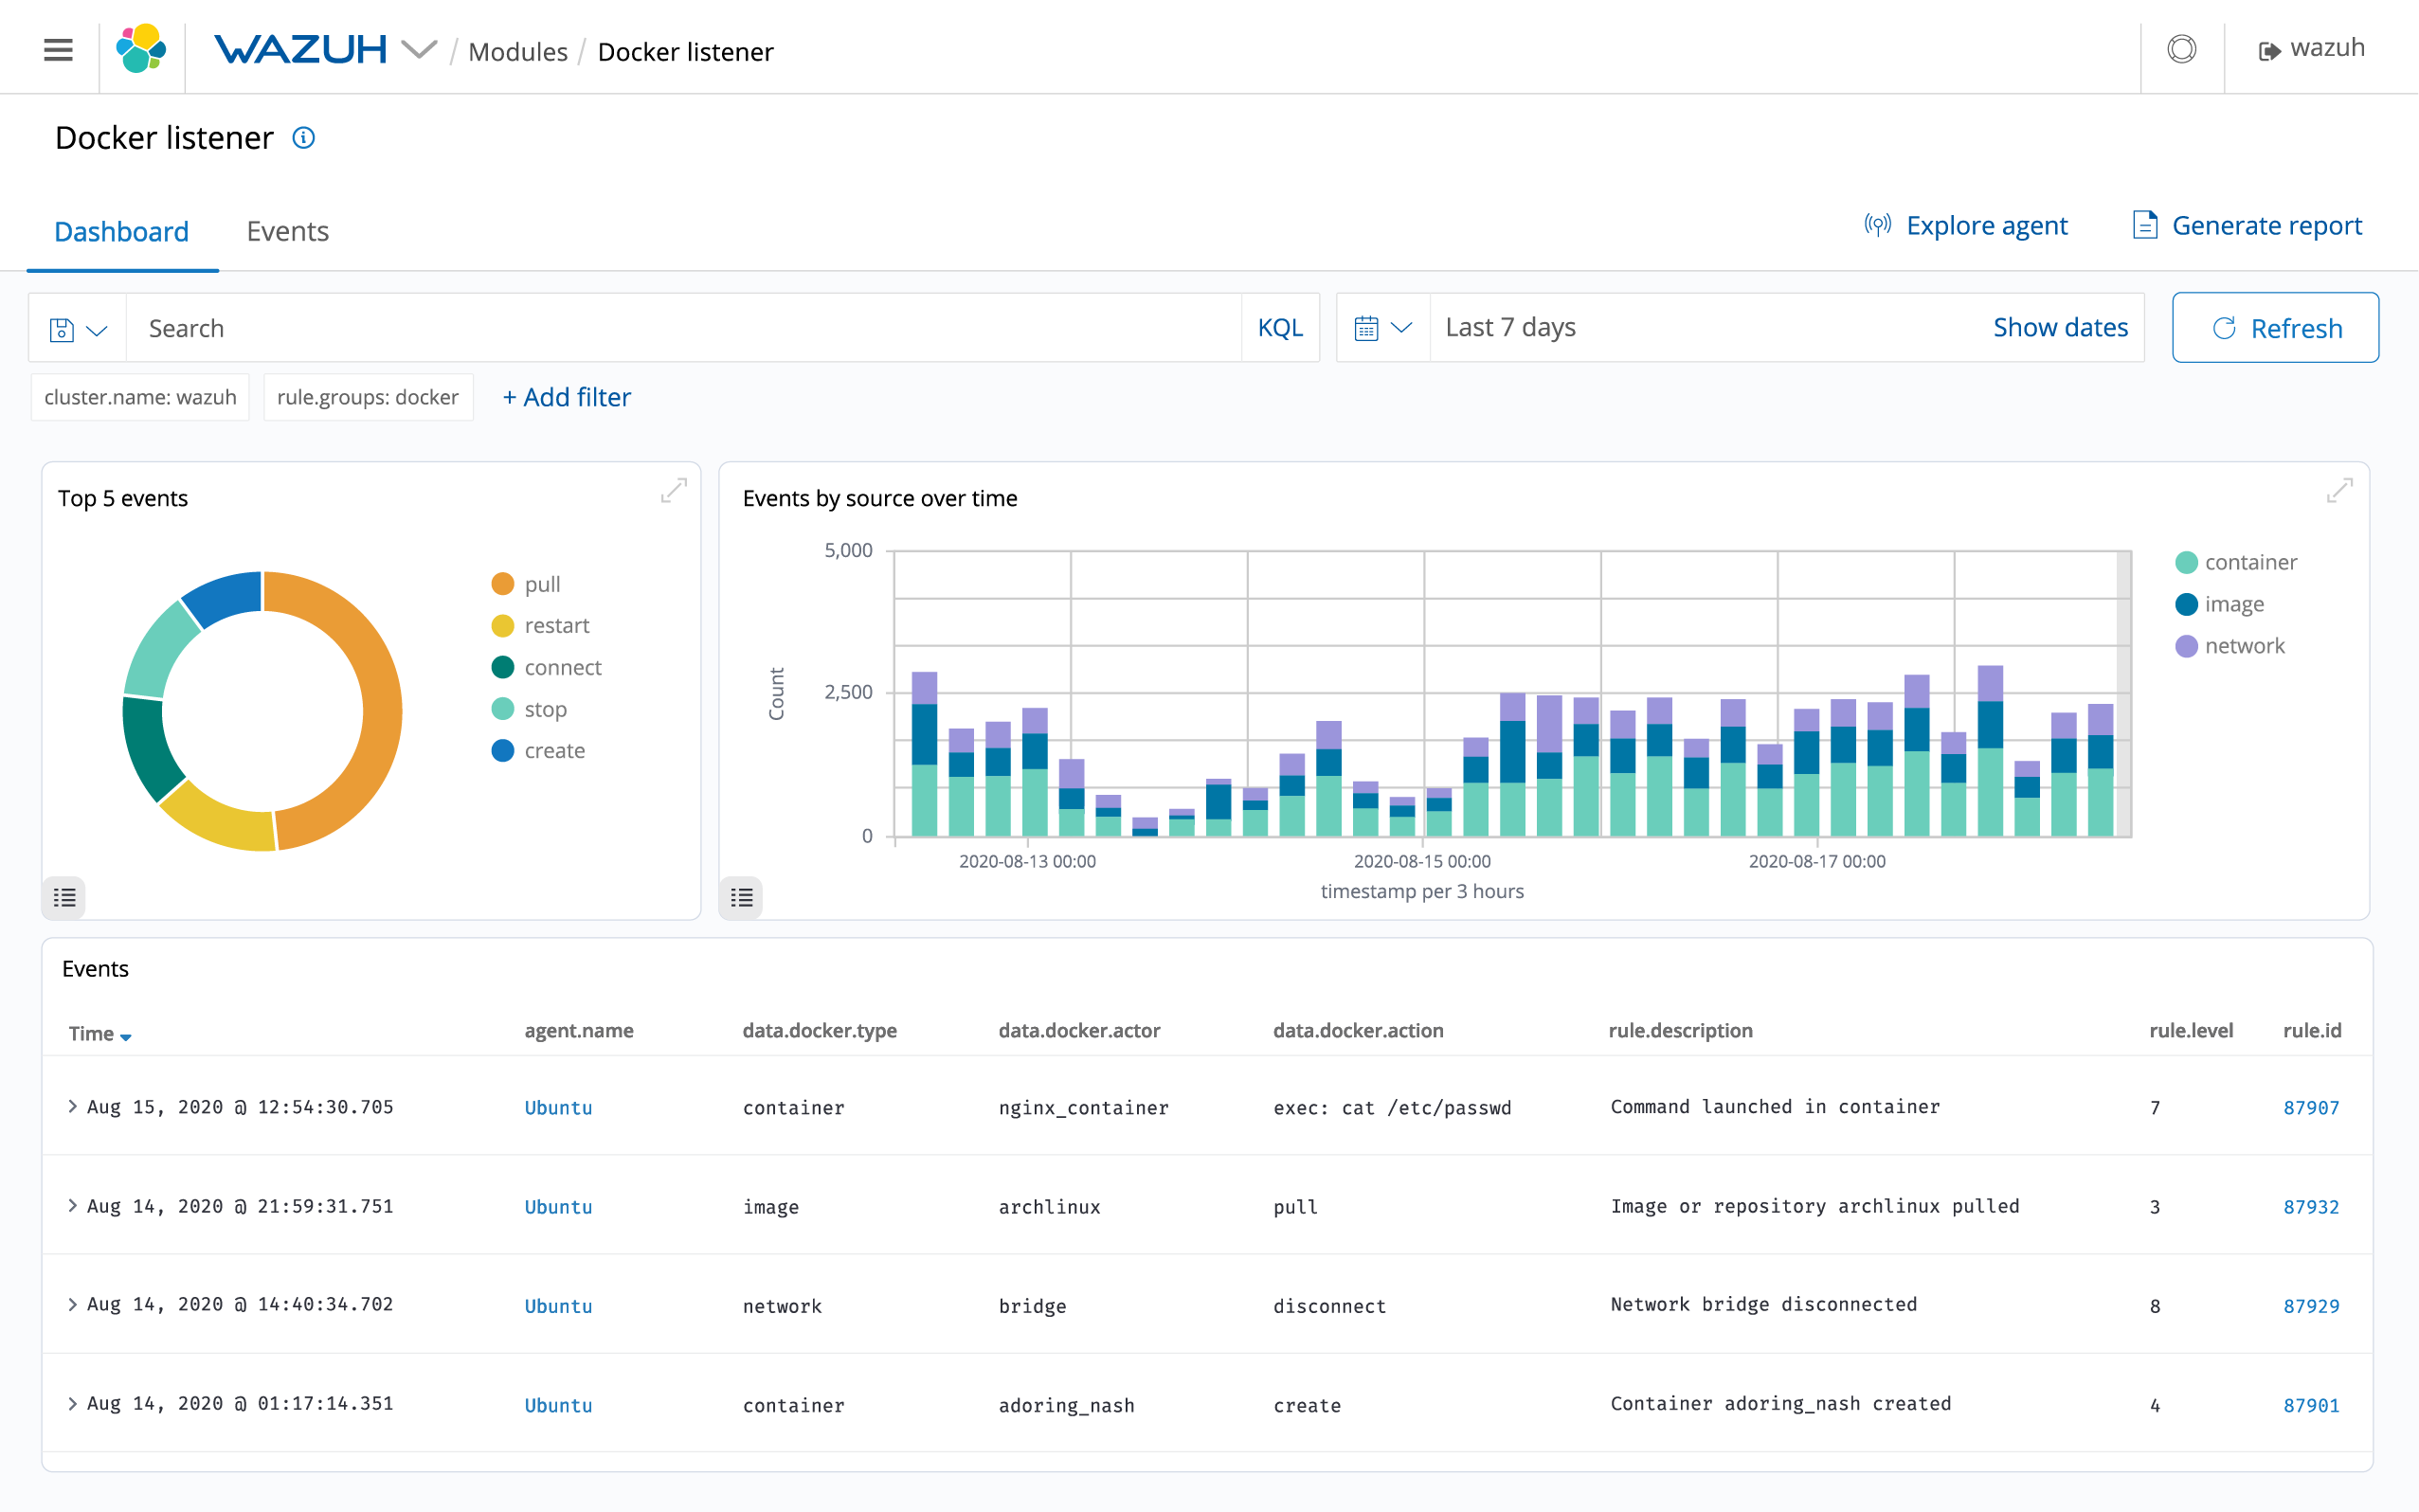 Wazuh provides security visibility into your Docker hosts and containers, monitoring their behavior and detecting threats, vulnerabilities and anomalies. The Wazuh agent has native integration with the Docker engine allowing users to monitor images, volumes, network settings, and running containers. Wazuh continuously collects and analyzes detailed runtime information. For example, alerting for containers running in […]